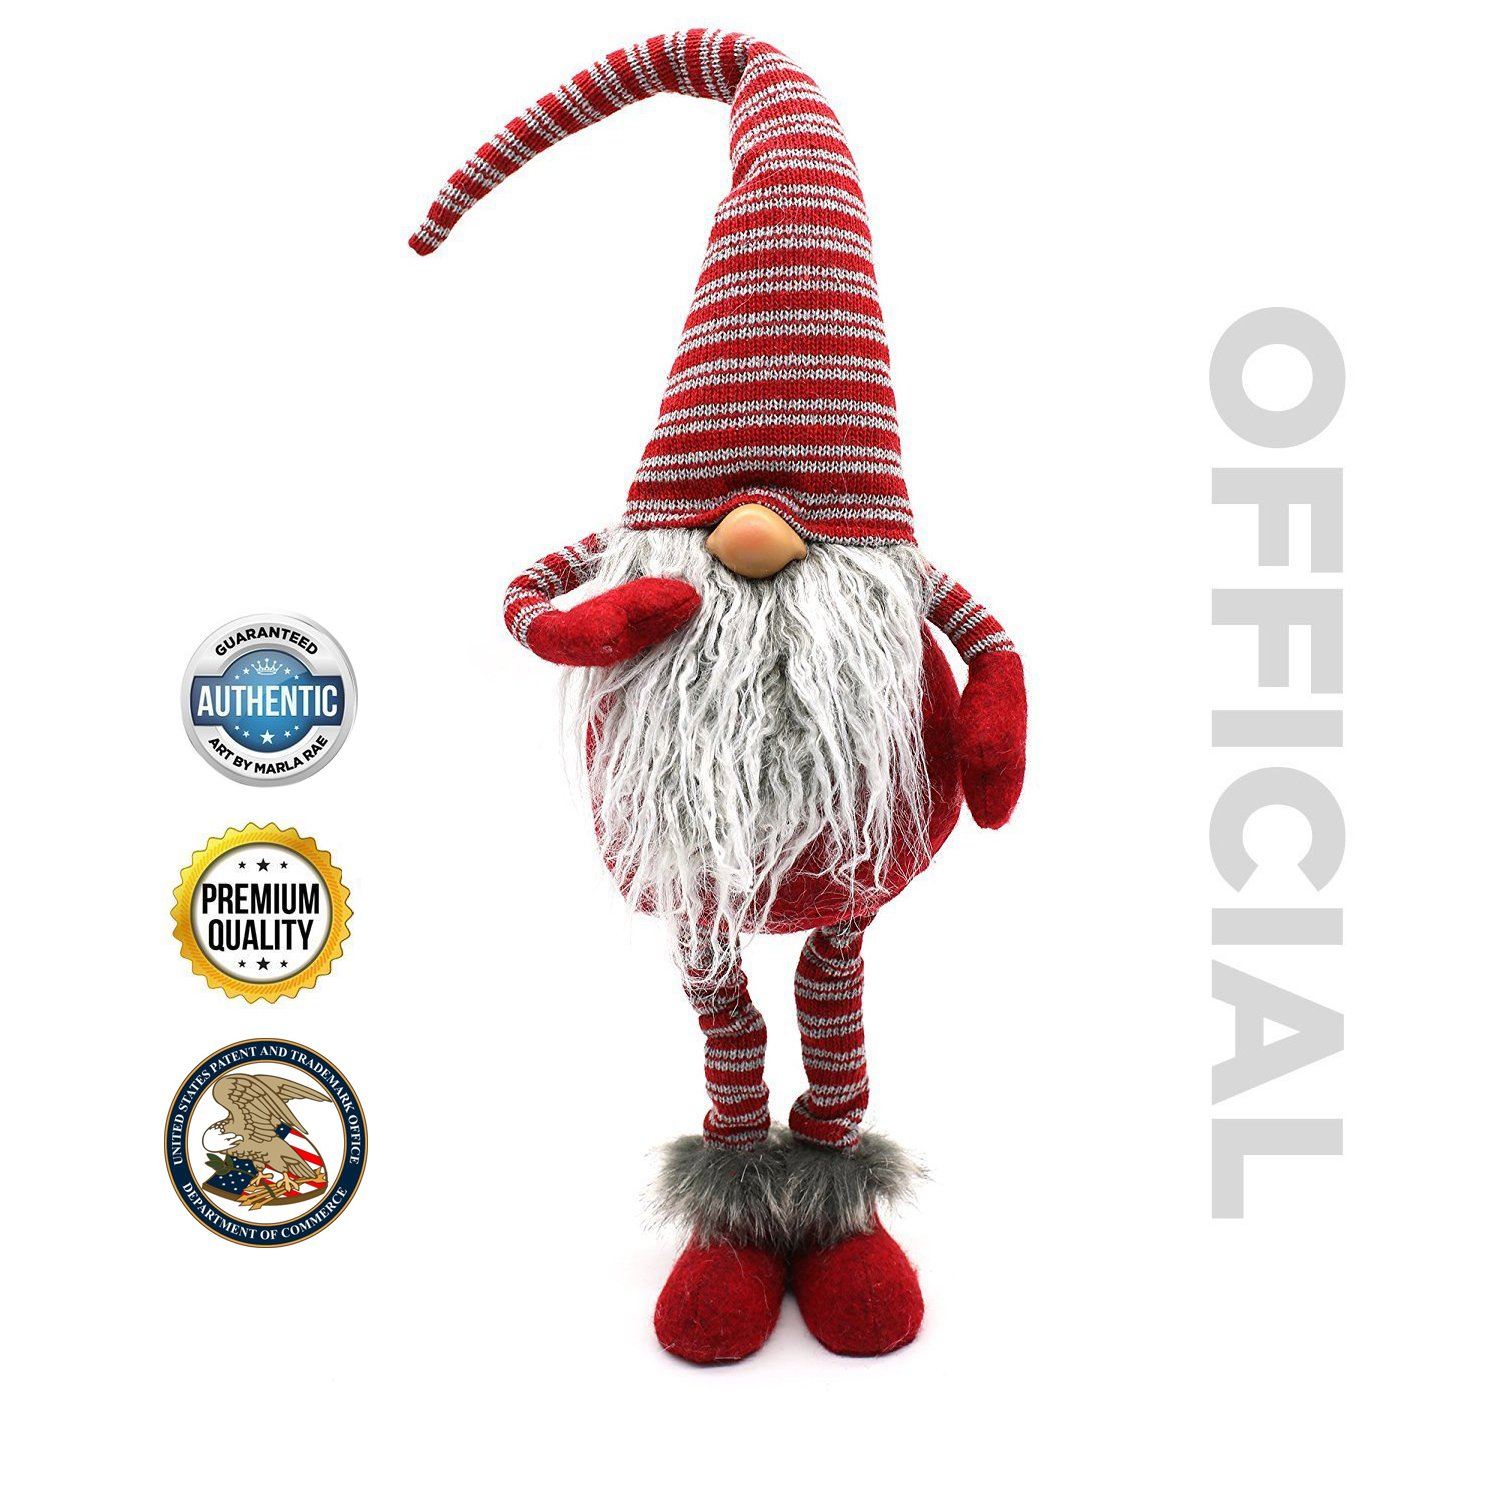 Handmade Christmas Gnome Ornaments For Men, Women & Kids | Well Crafted Luxury Figurines Set For Home Décor, New Year's Eve Parties, Personalized Gifts, Table Centerpieces, Garden & More- Red Tall